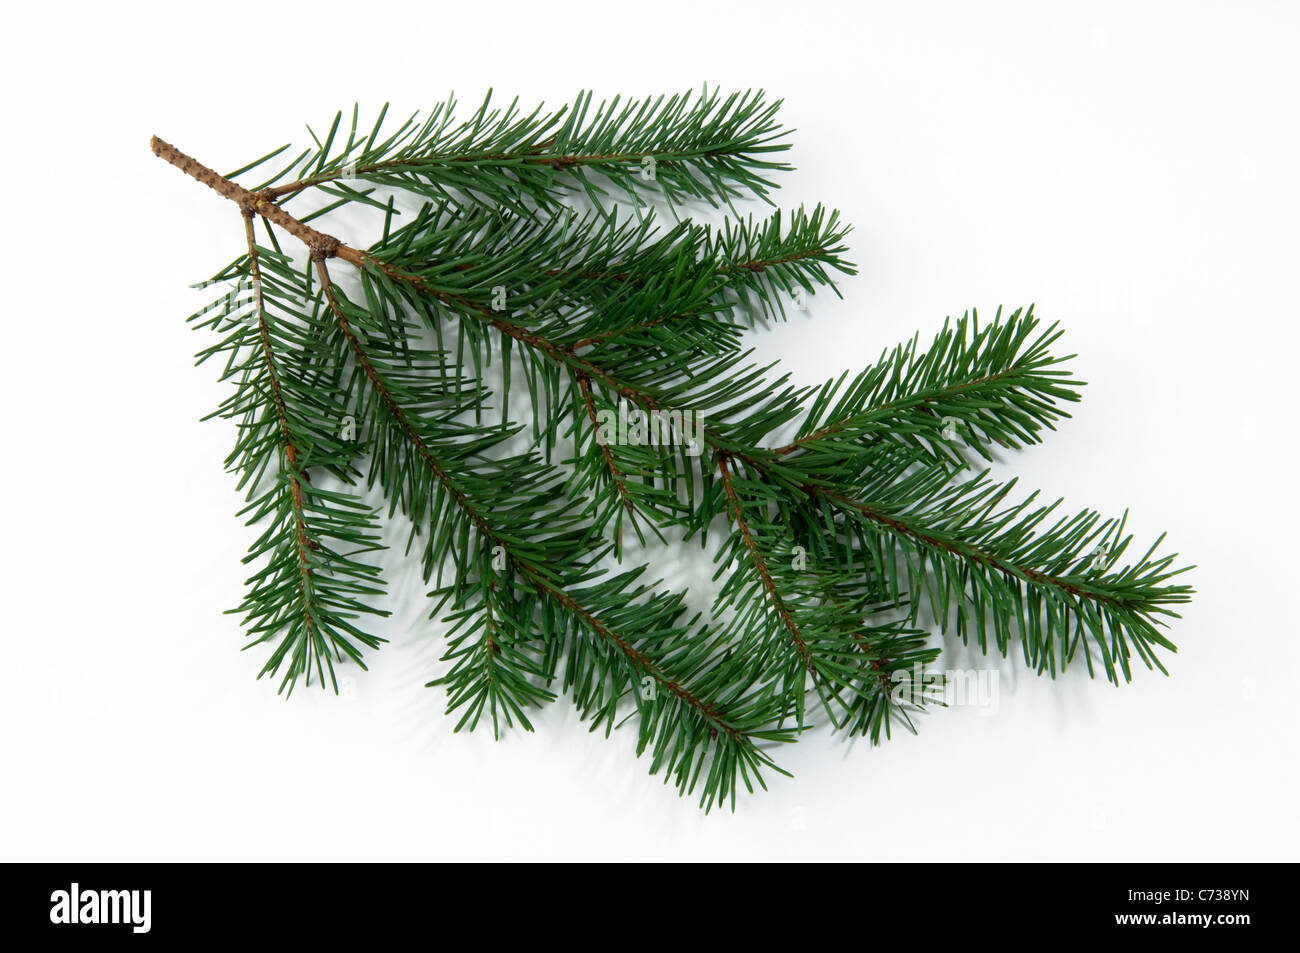 Douglas Fir (Pseudotsuga menziesii, Pseudotsuga douglasii), twig. Studio shot against a white background. - Stock Image